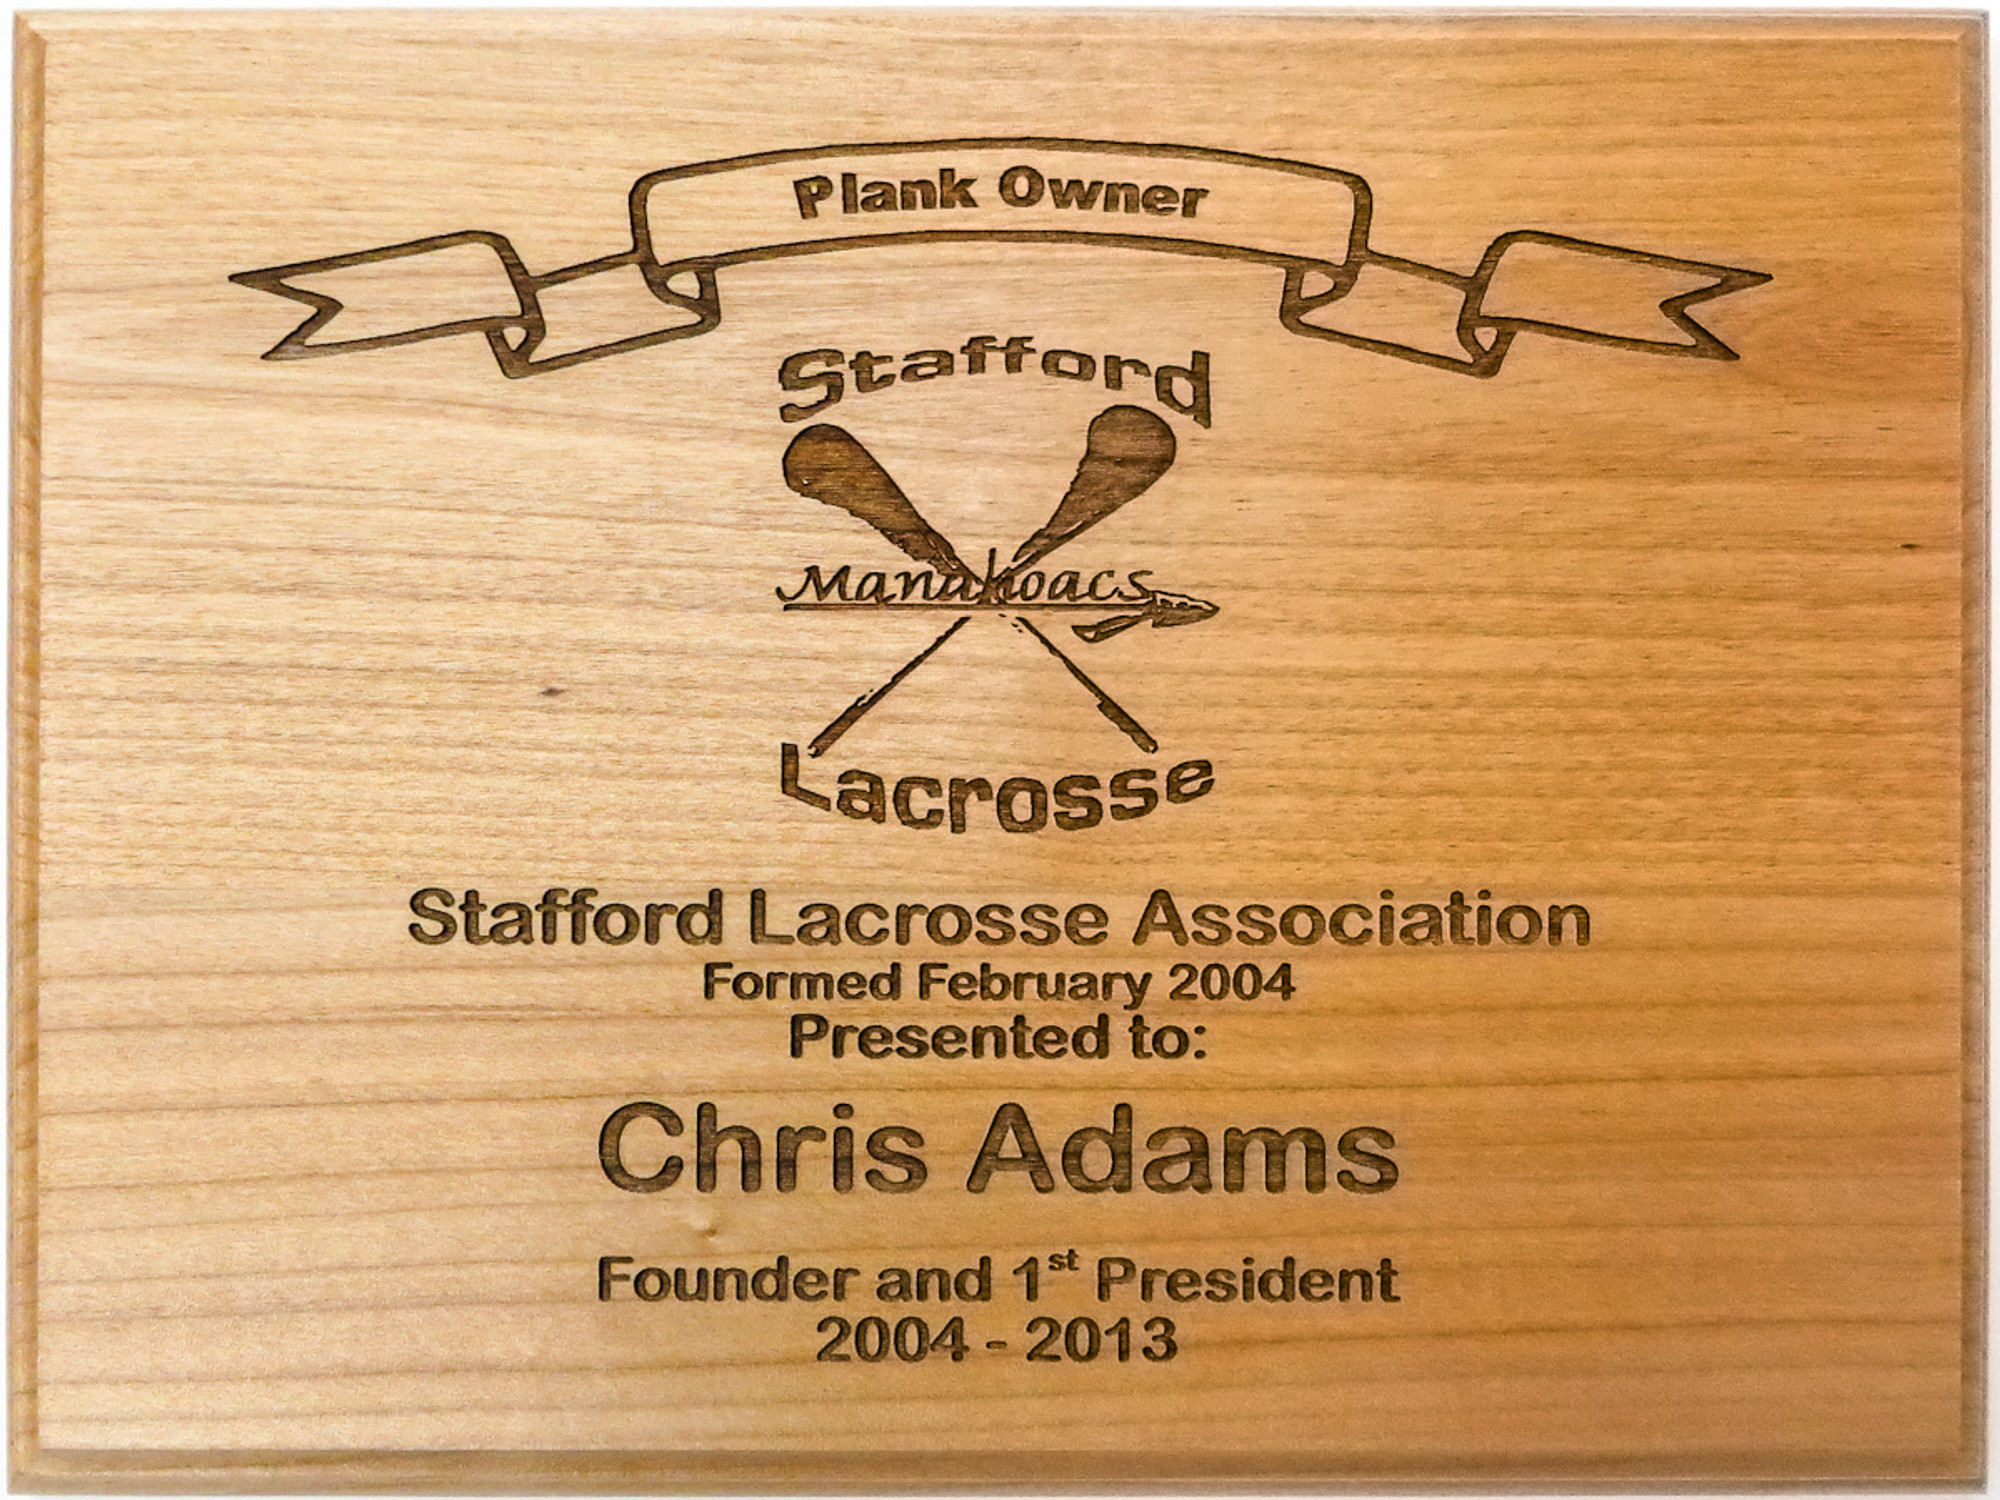 Personalized plank owner plaques custom wood plank owner plaques stafford lacrosse association plank owner plaque formed february 2004 yelopaper Choice Image